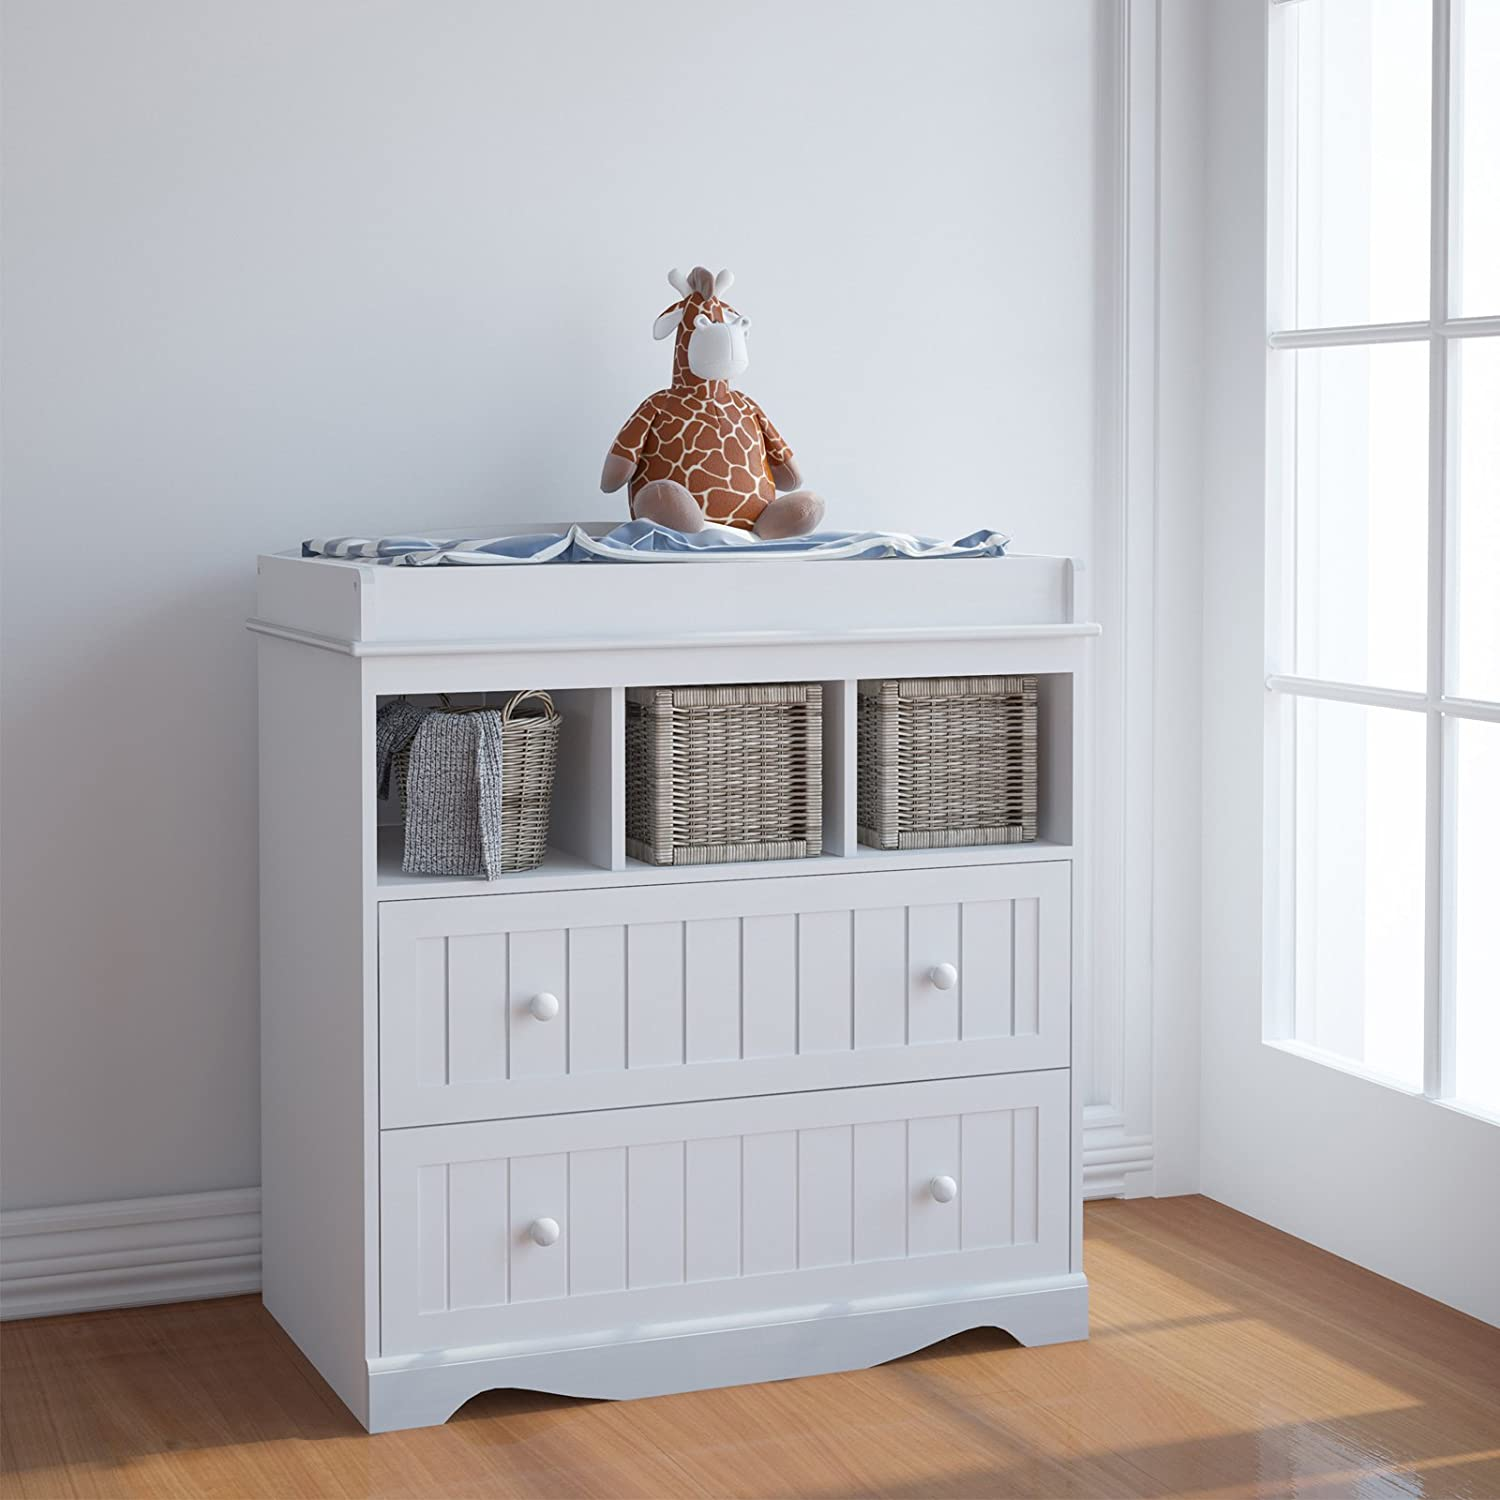 White Nursery Furniture Storage Station Infantastic Baby Changing Table Unit with Drawers